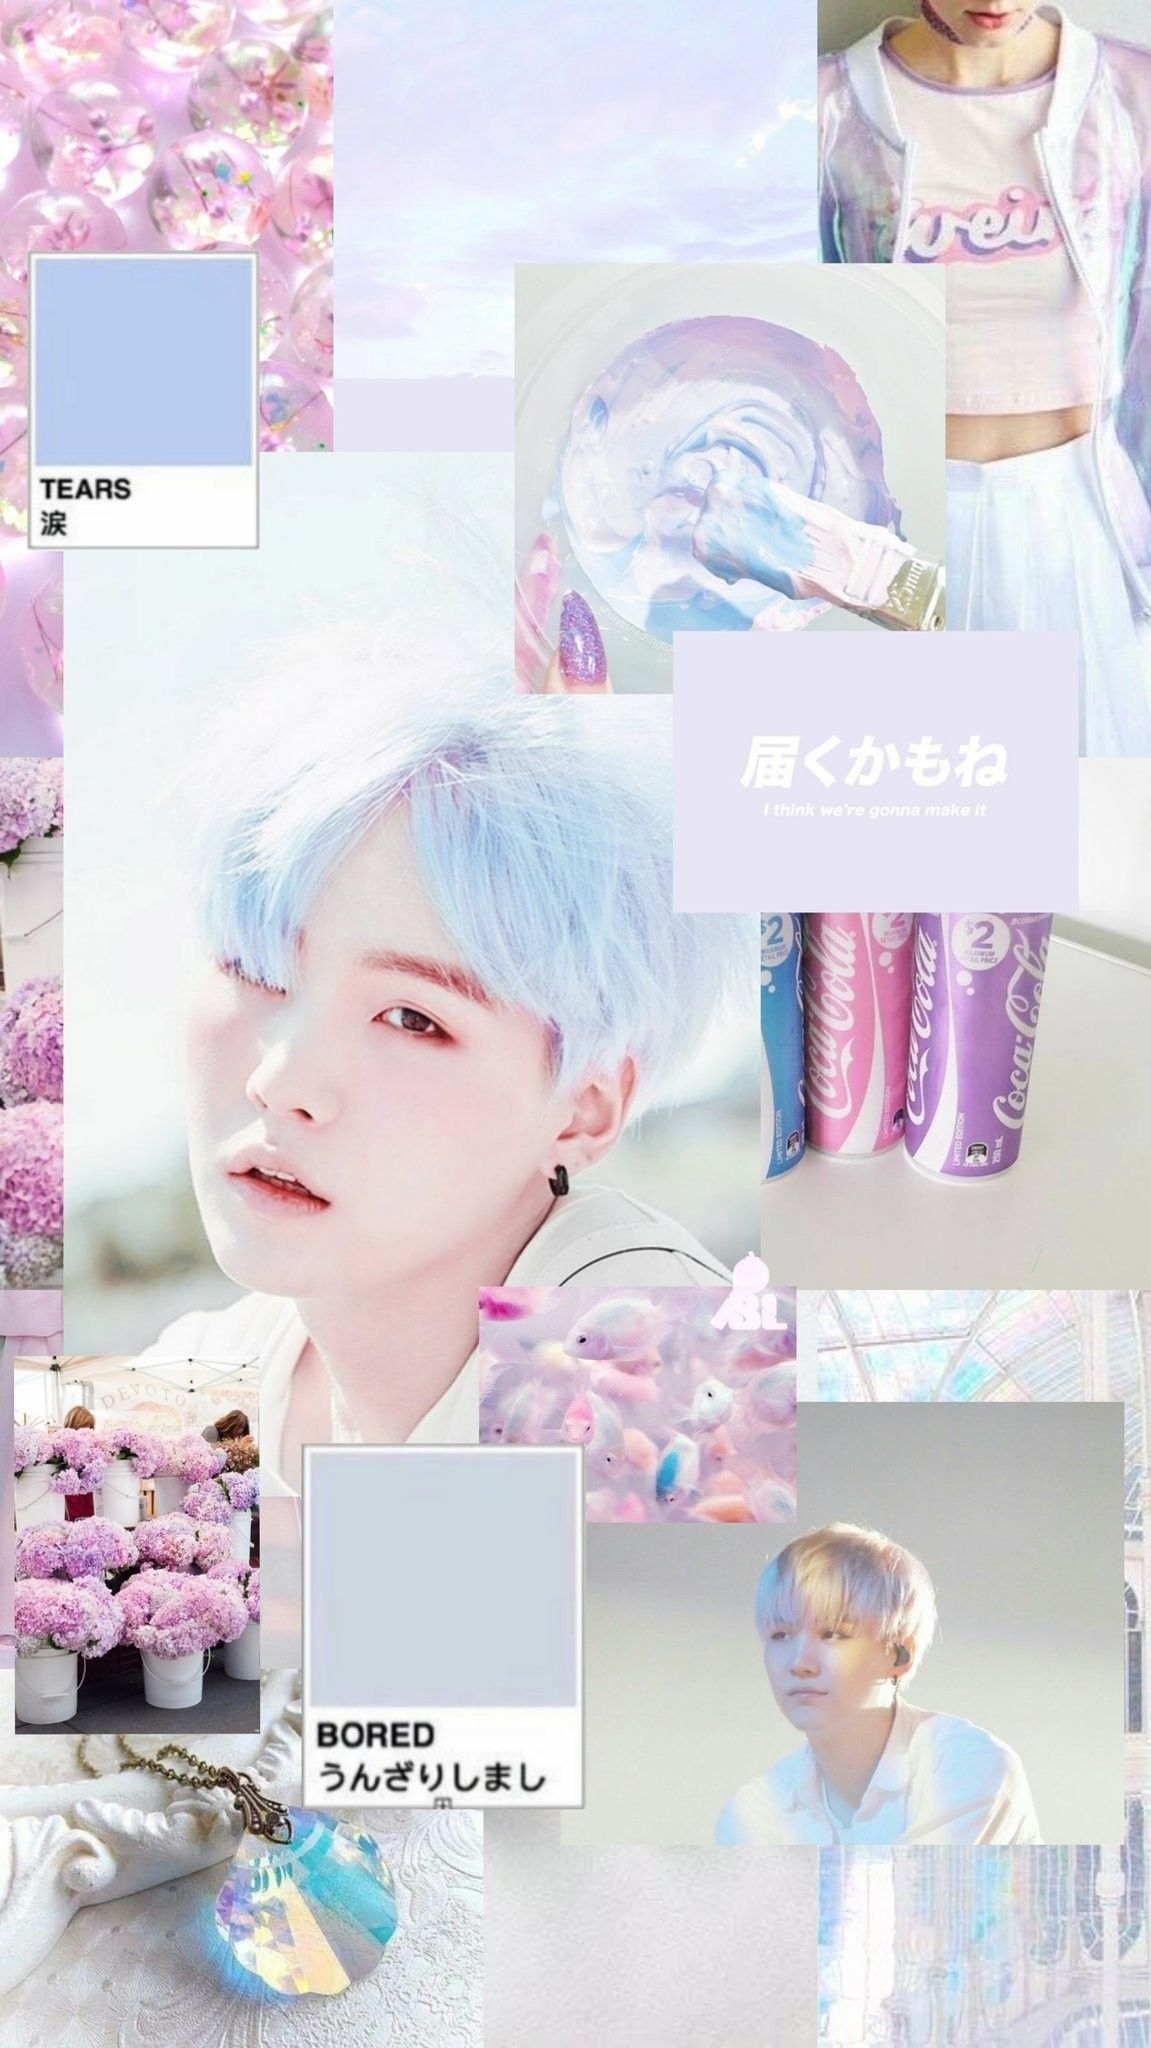 Suga Soft Aesthetic Wallpaper Credits To Twitter Btsbangtanlocks C Suga Yoongi Wallpaper Lucu Gambar Dinding Wallpaper Ponsel